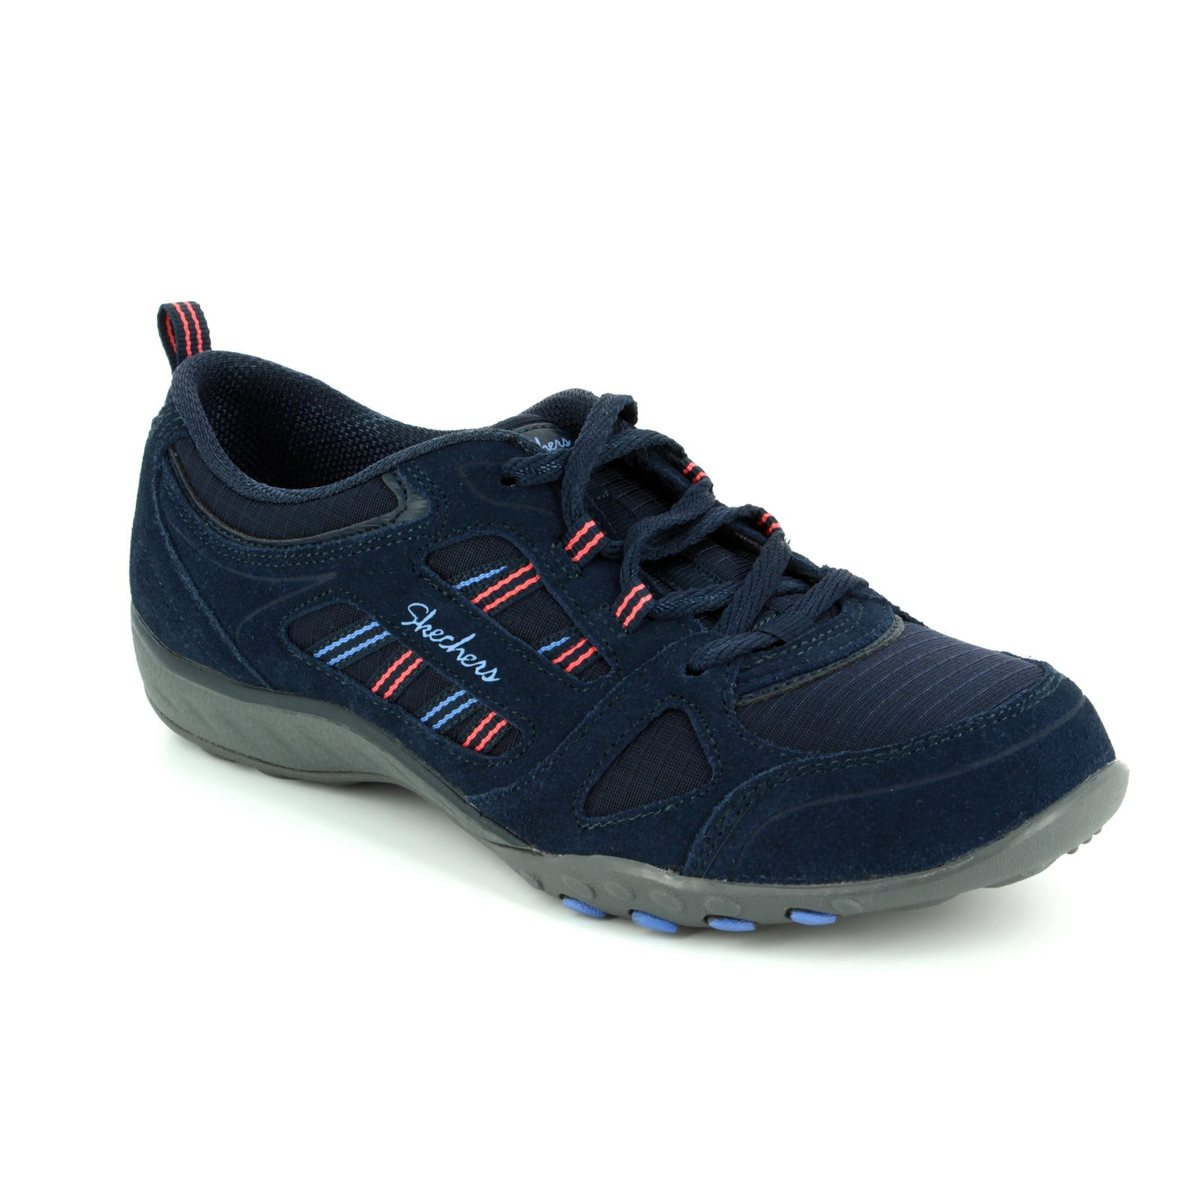 fd5a035e9c Skechers Lacing Shoes - Navy - 22544 GOOD LUCK